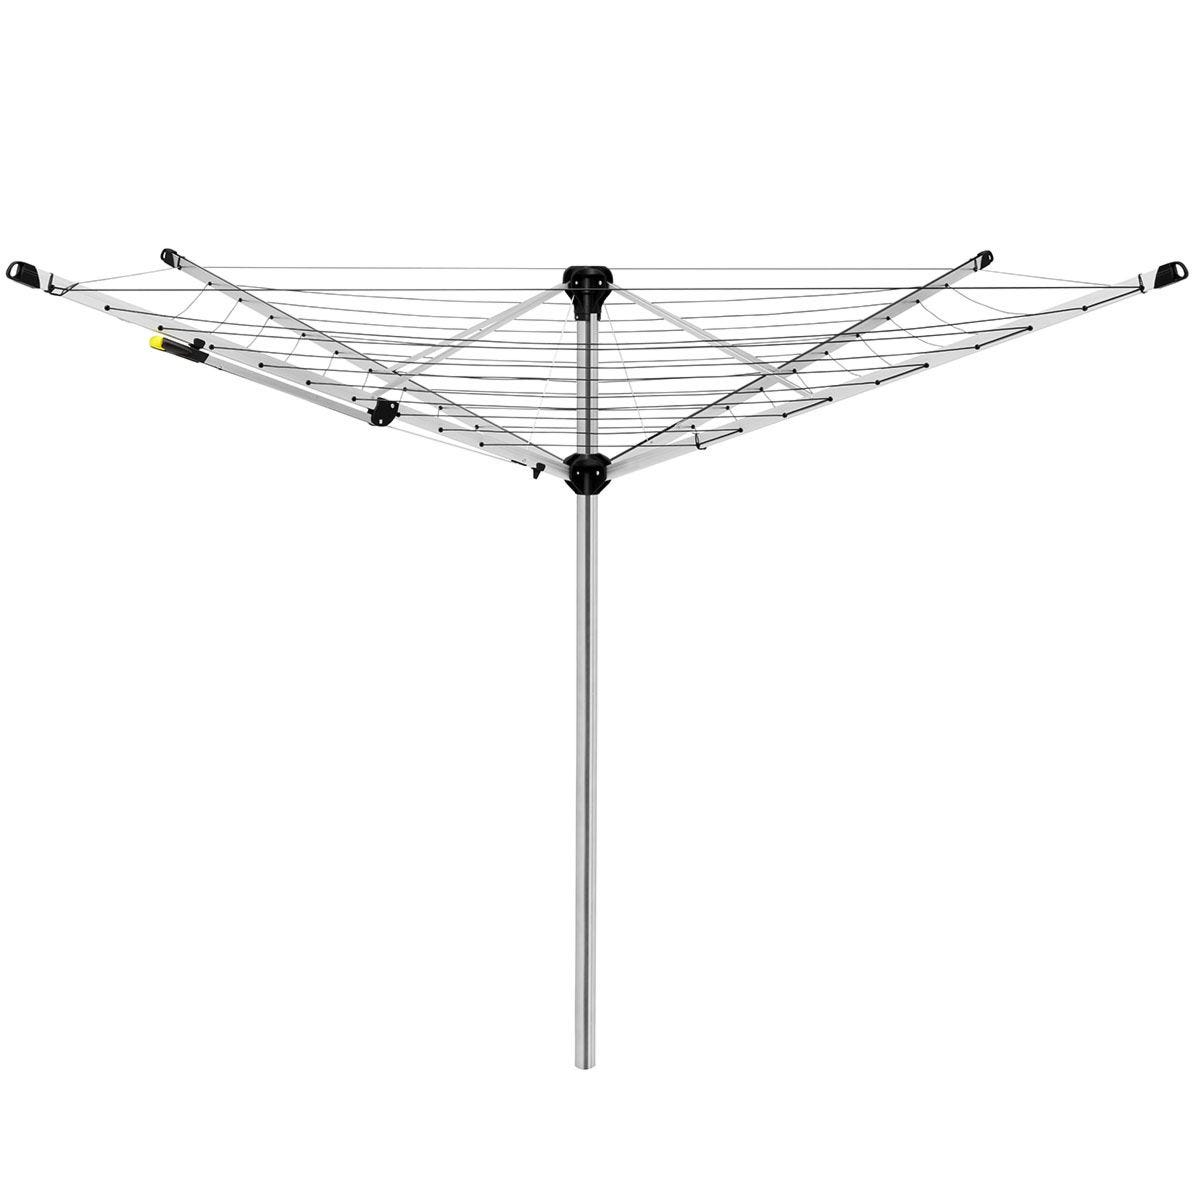 Addis Easi-Lift 4 Arm Rotary Airer